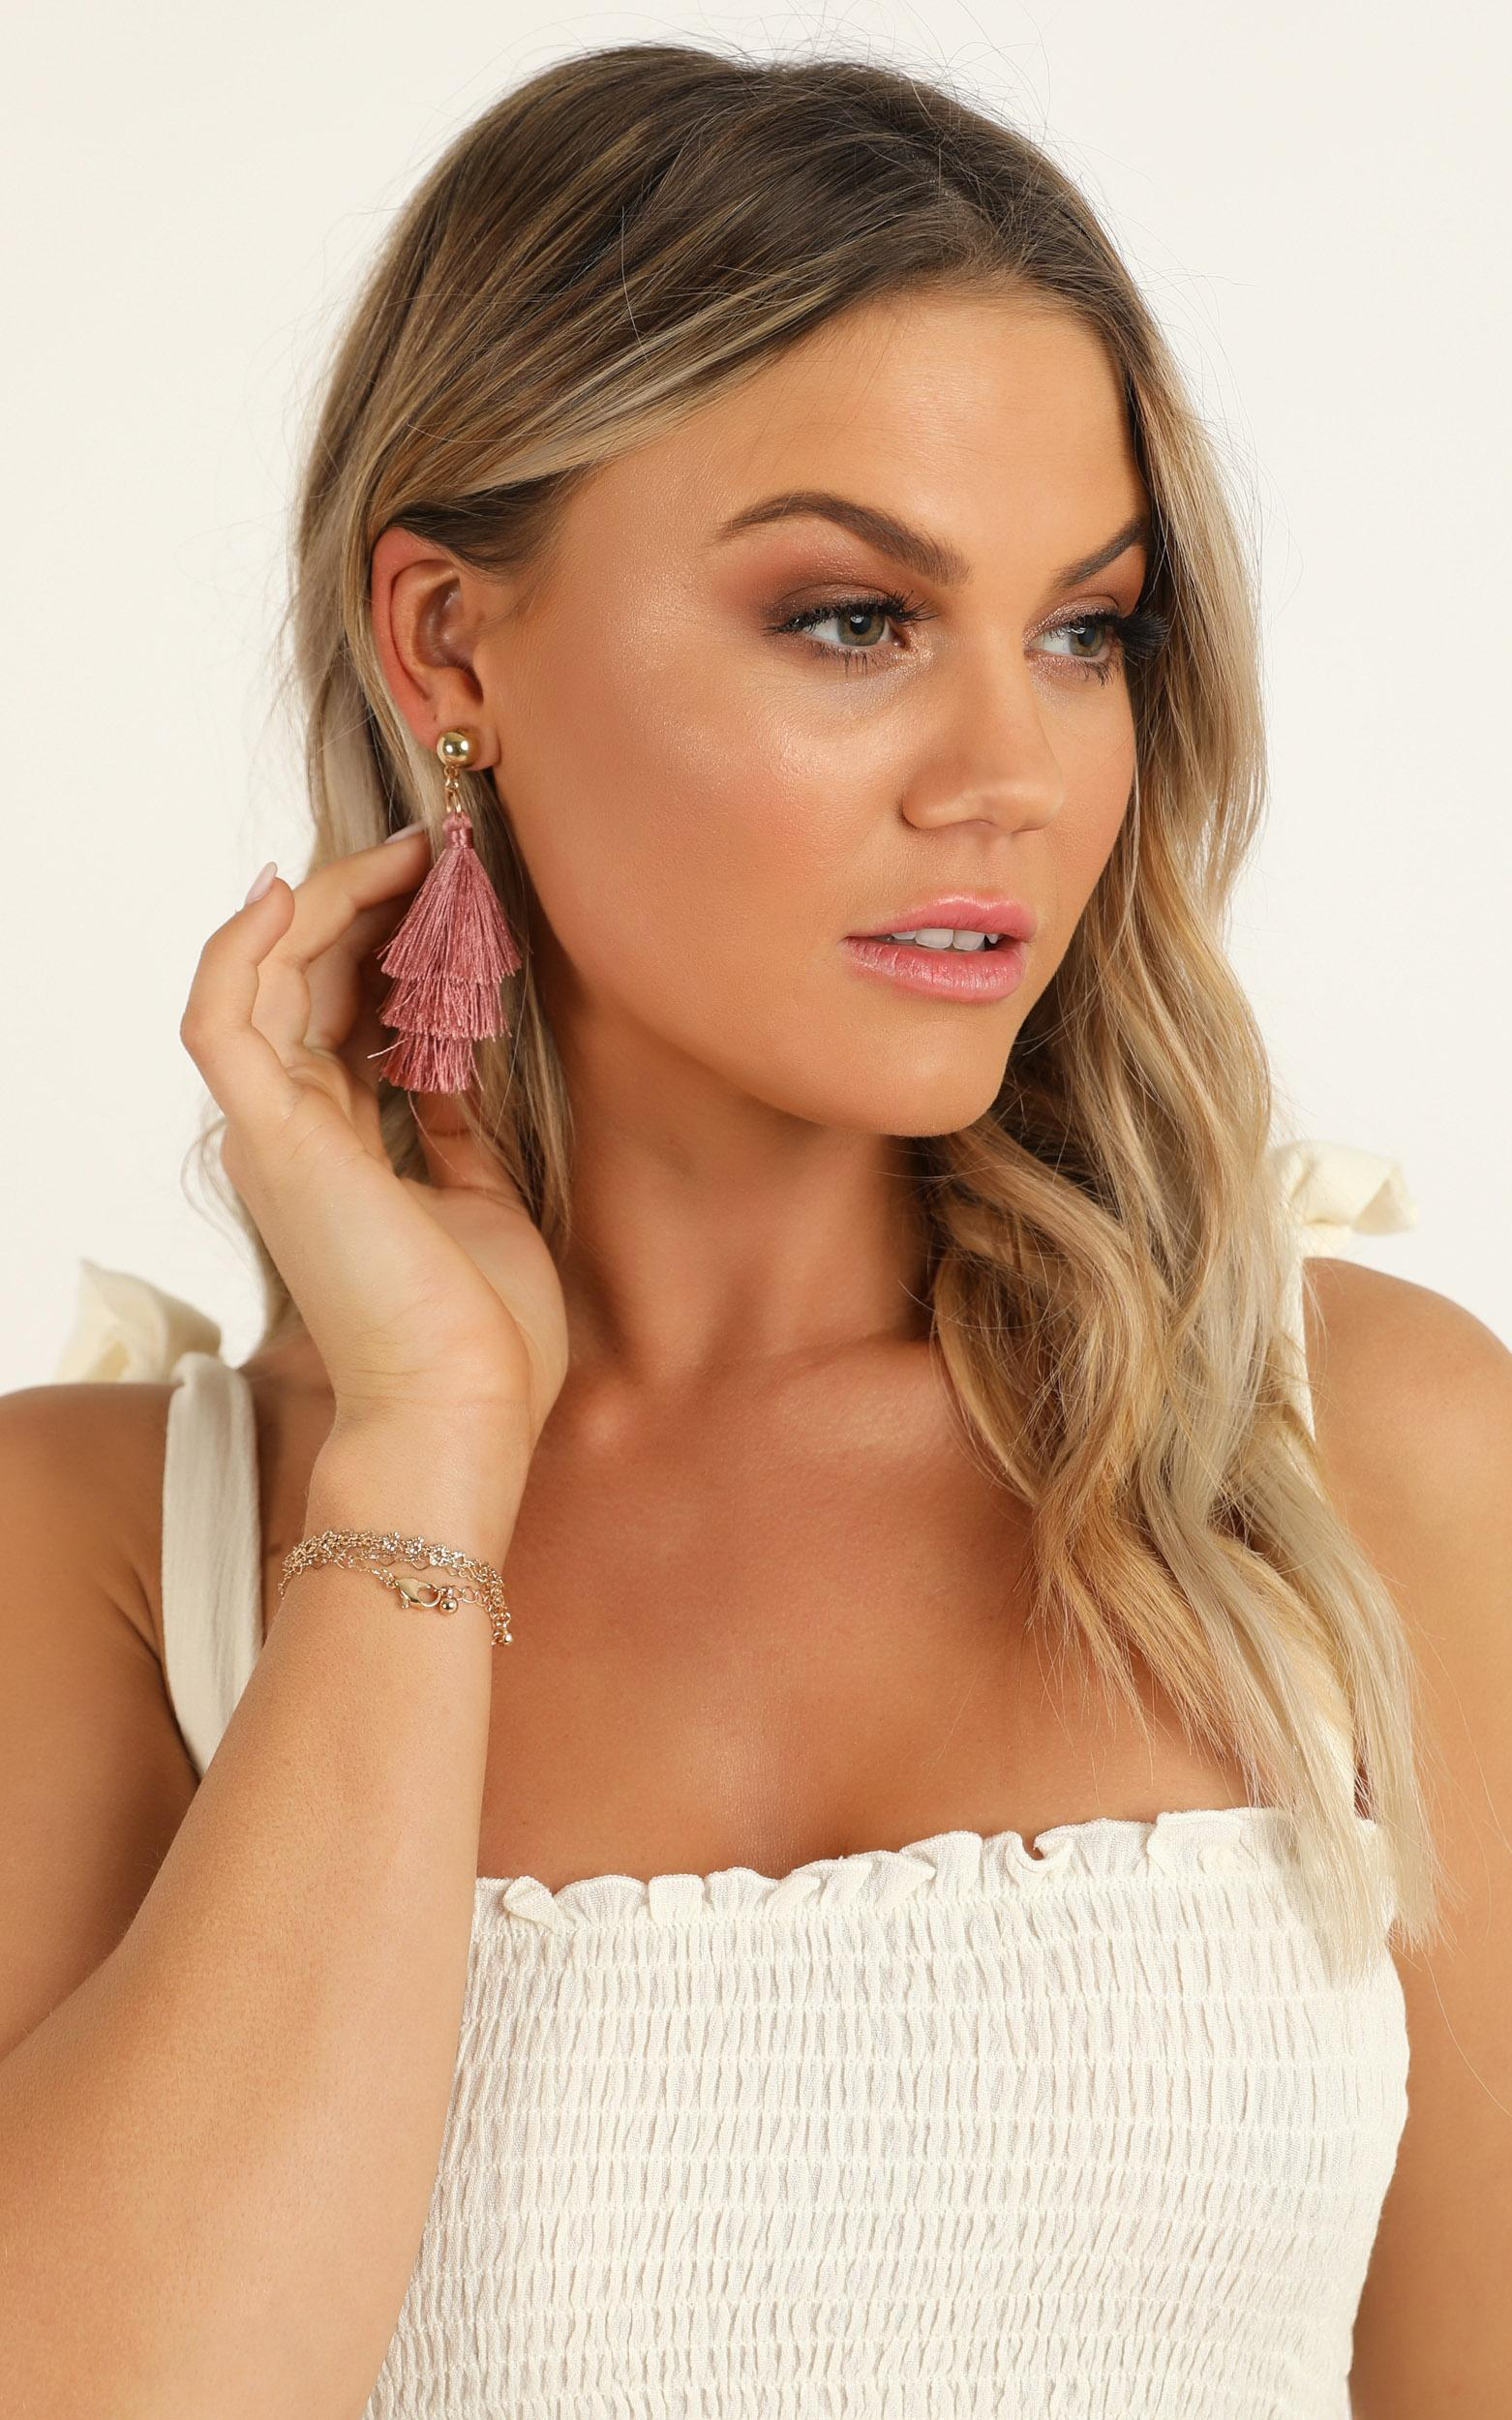 Surprise Yourself Earrings 6pc Set In Gold And Dusty Rose, , hi-res image number null